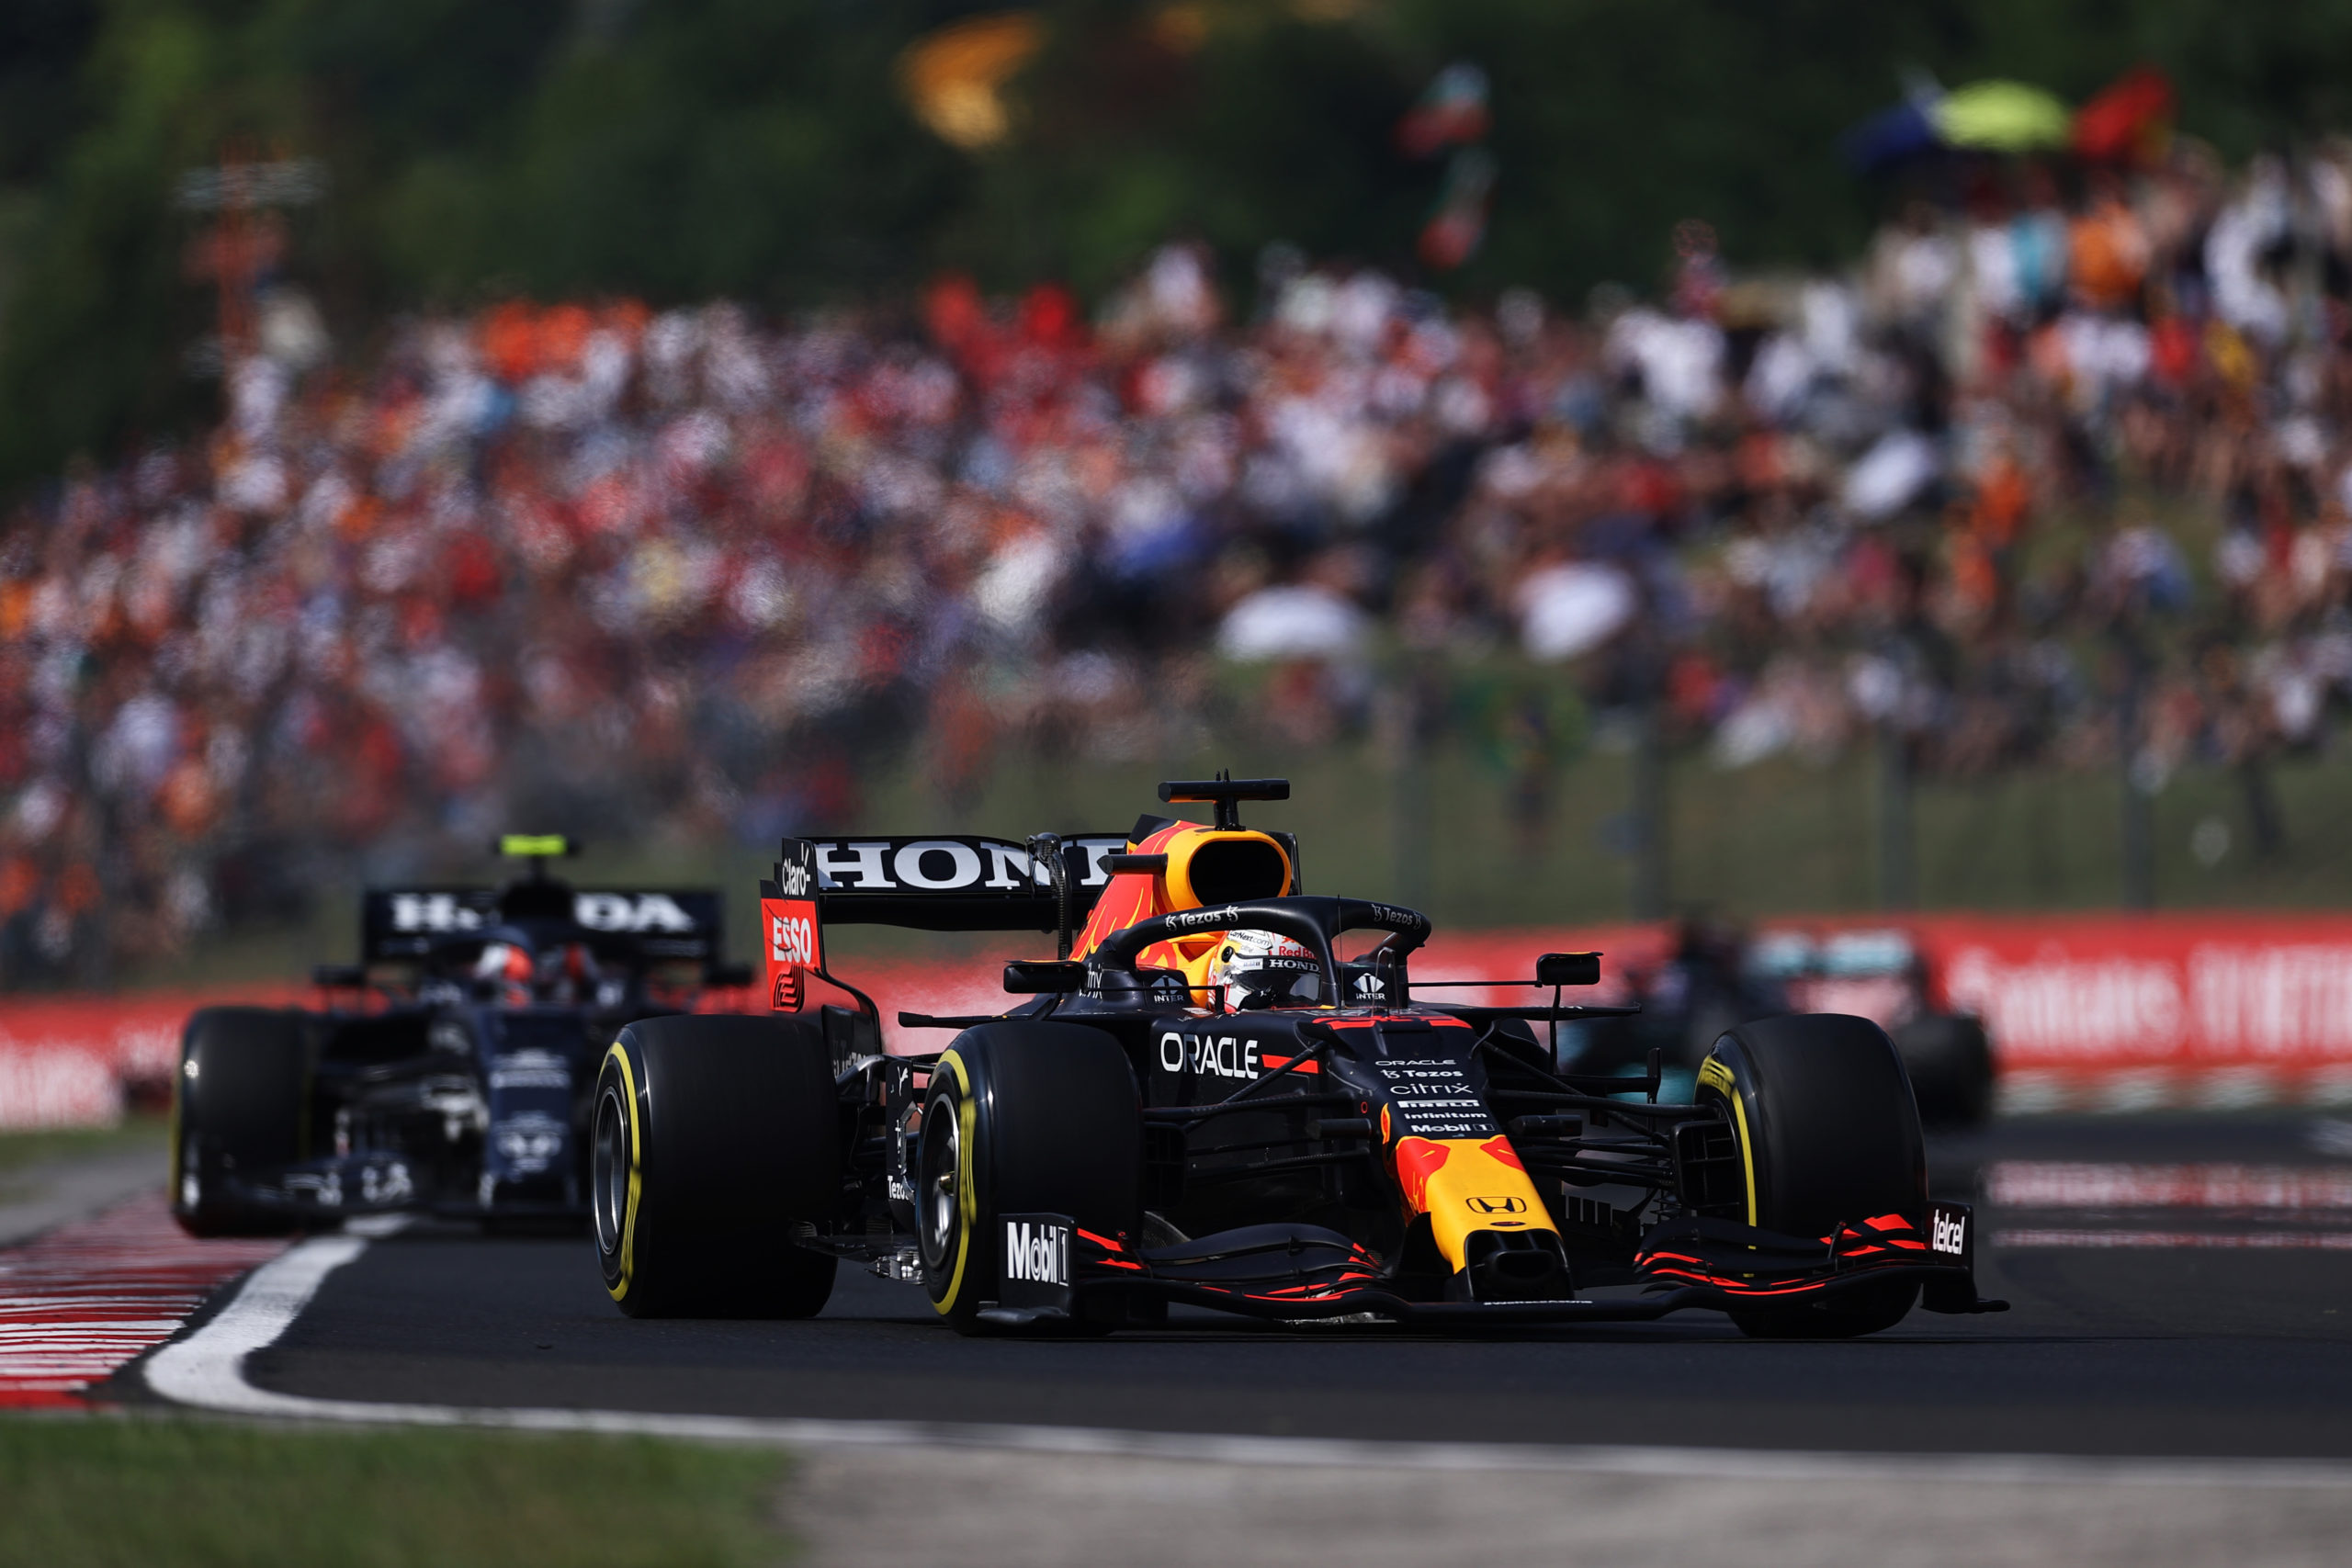 BUDAPEST, HUNGARY - AUGUST 01: Max Verstappen of the Netherlands driving the (33) Red Bull Racing RB16B Honda during the F1 Grand Prix of Hungary at Hungaroring on August 01, 2021 in Budapest, Hungary. (Photo by Lars Baron/Getty Images) // Getty Images / Red Bull Content Pool  // SI202108010309 // Usage for editorial use only //